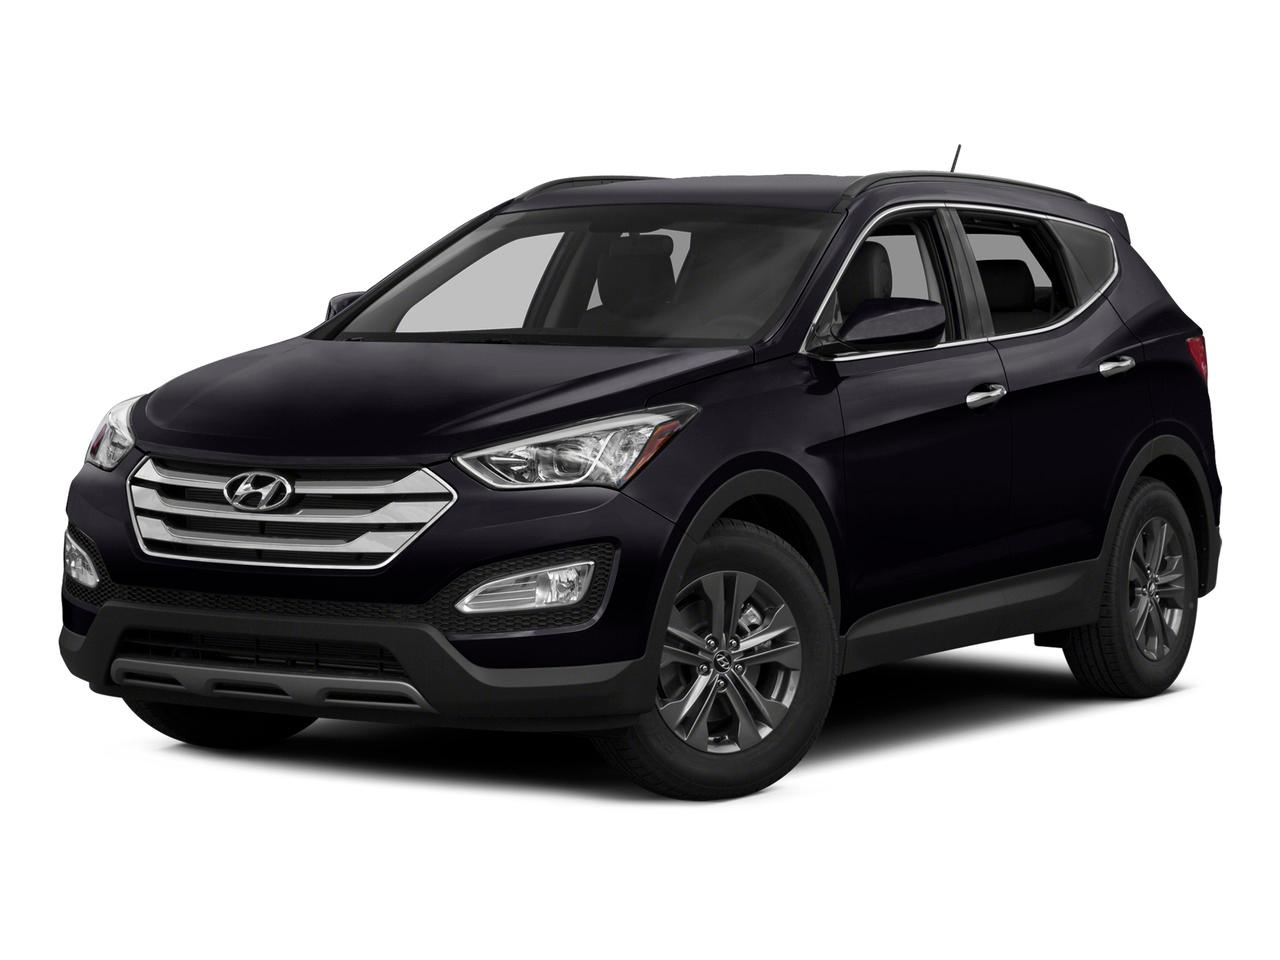 2015 Hyundai Santa Fe Sport Vehicle Photo in Glenwood Springs, CO 81601